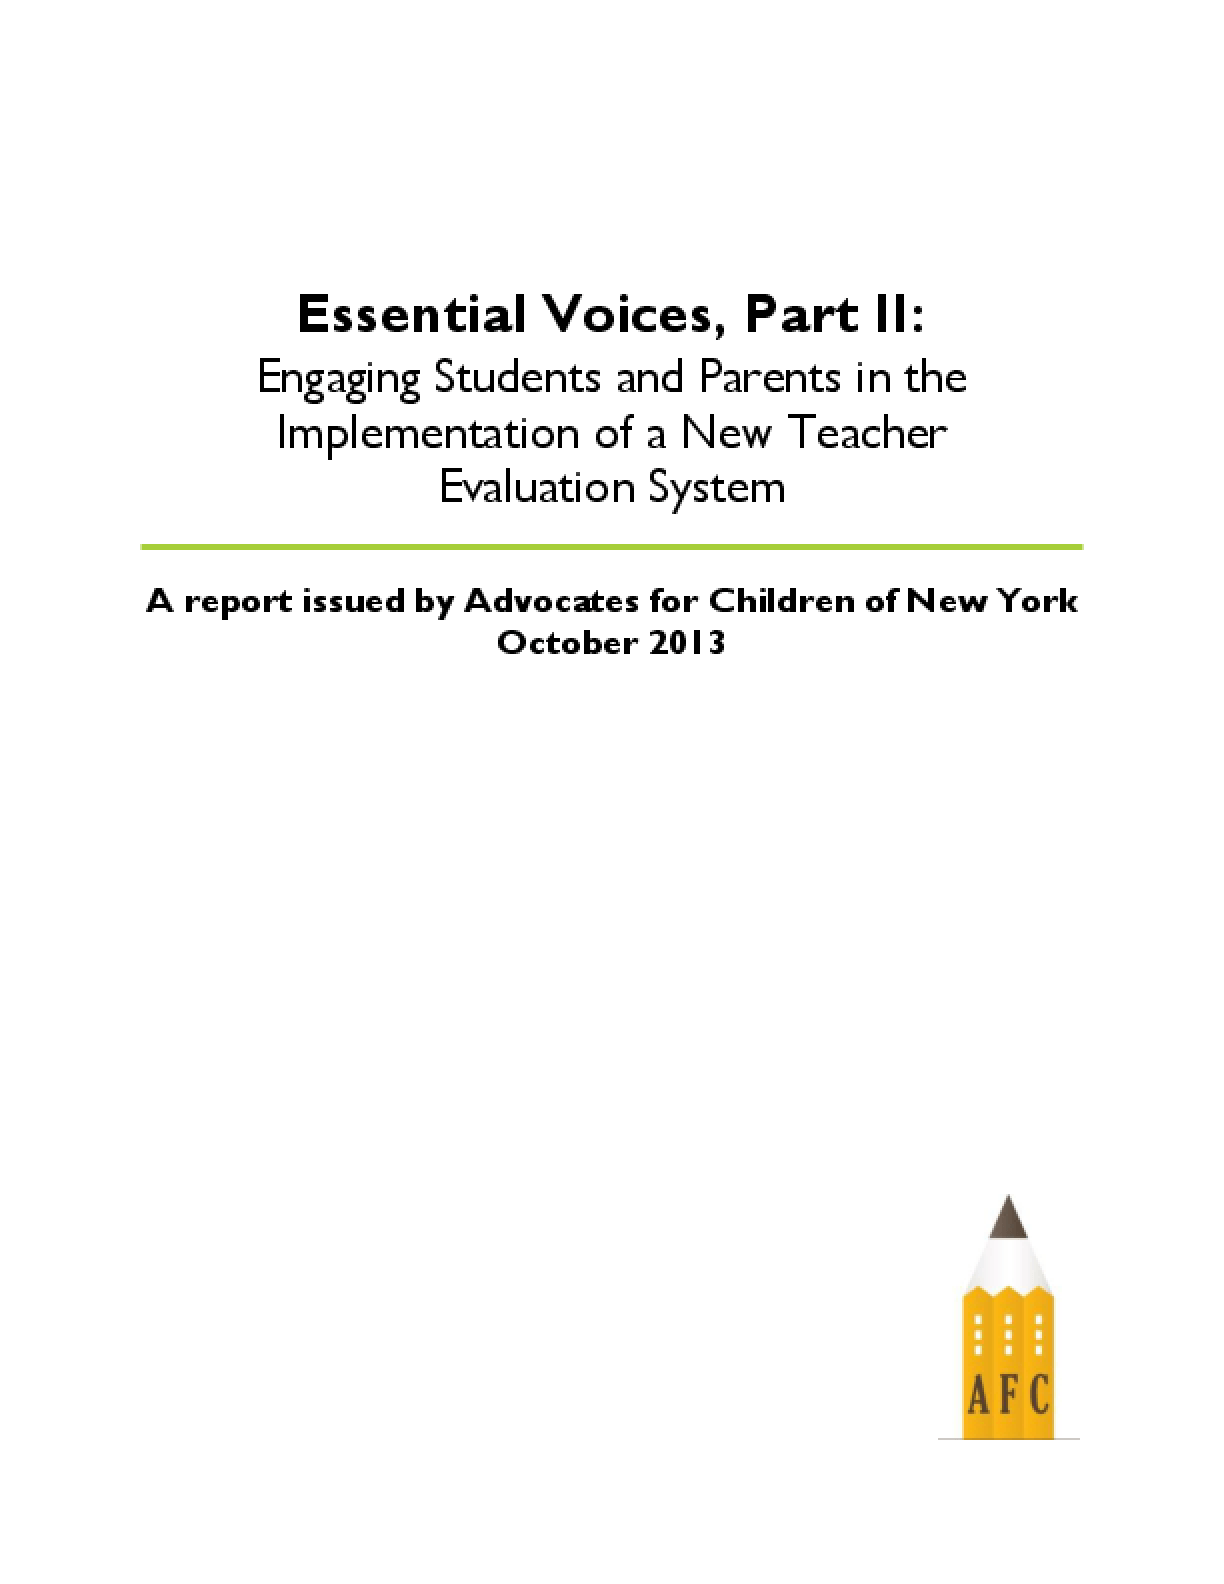 Essential Voices, Part II: Engaging Students and Parents in the Implementation of a New Teacher Evaluation System